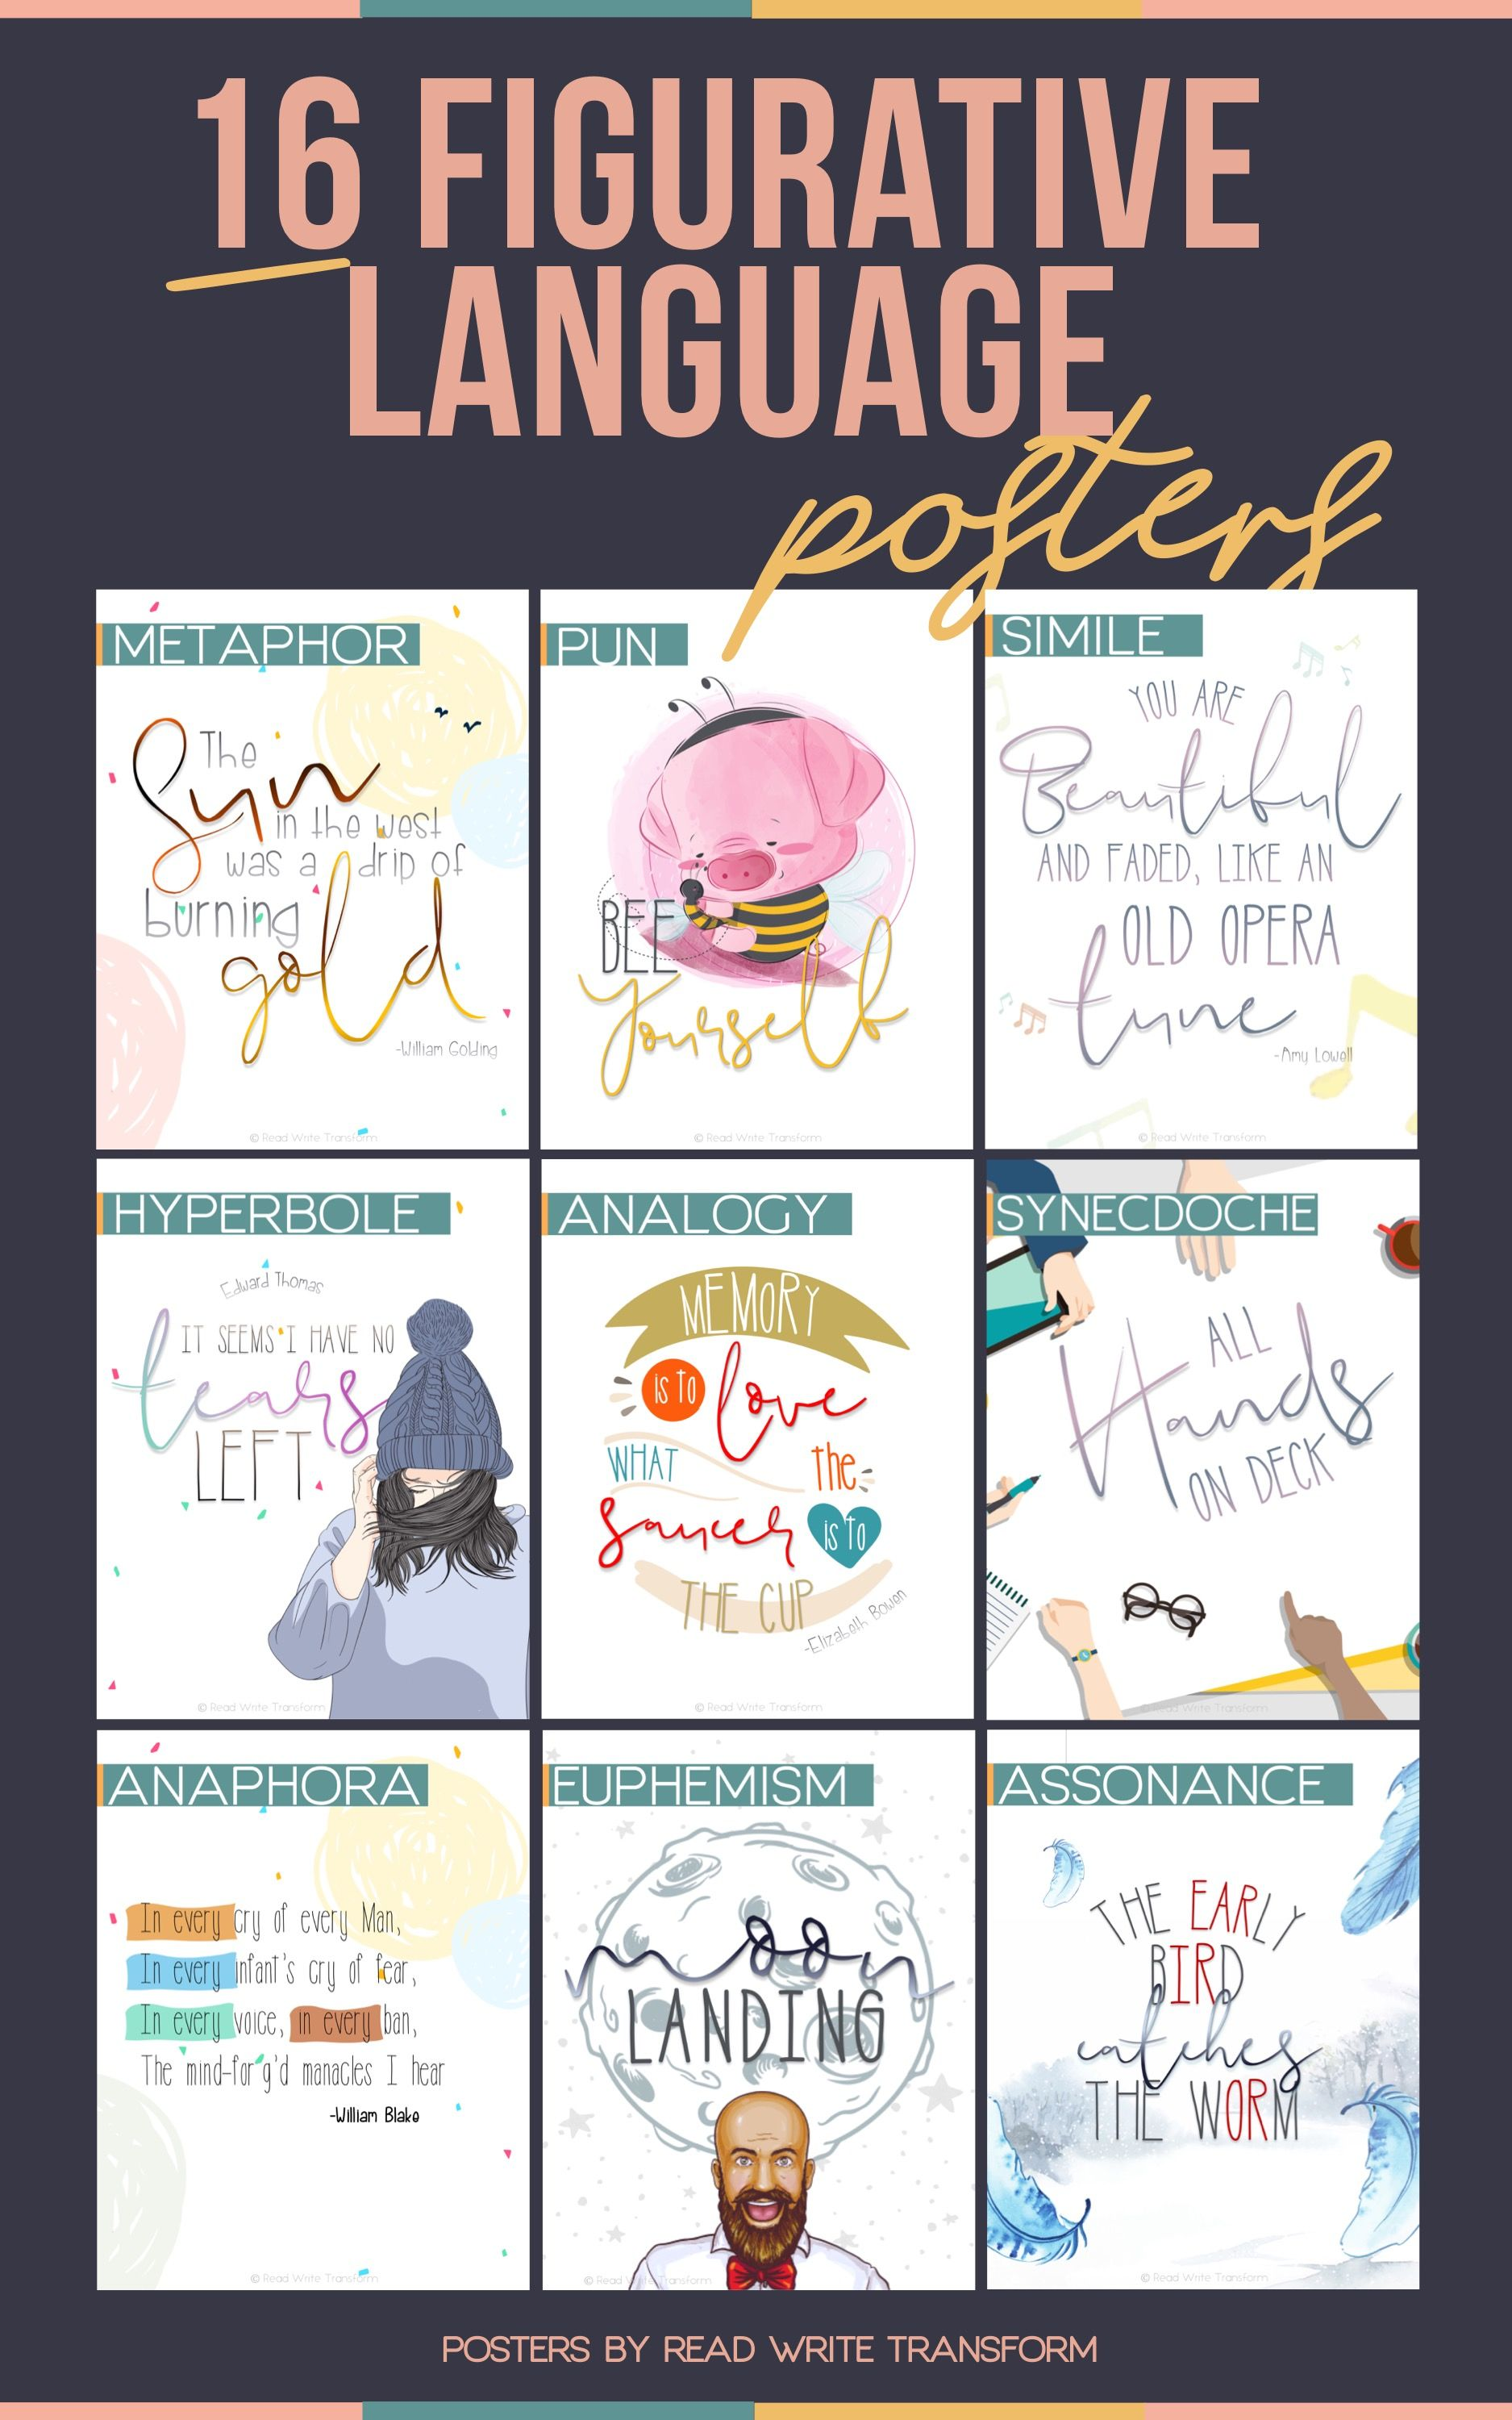 16 Figurative Language Posters For Middle And High School